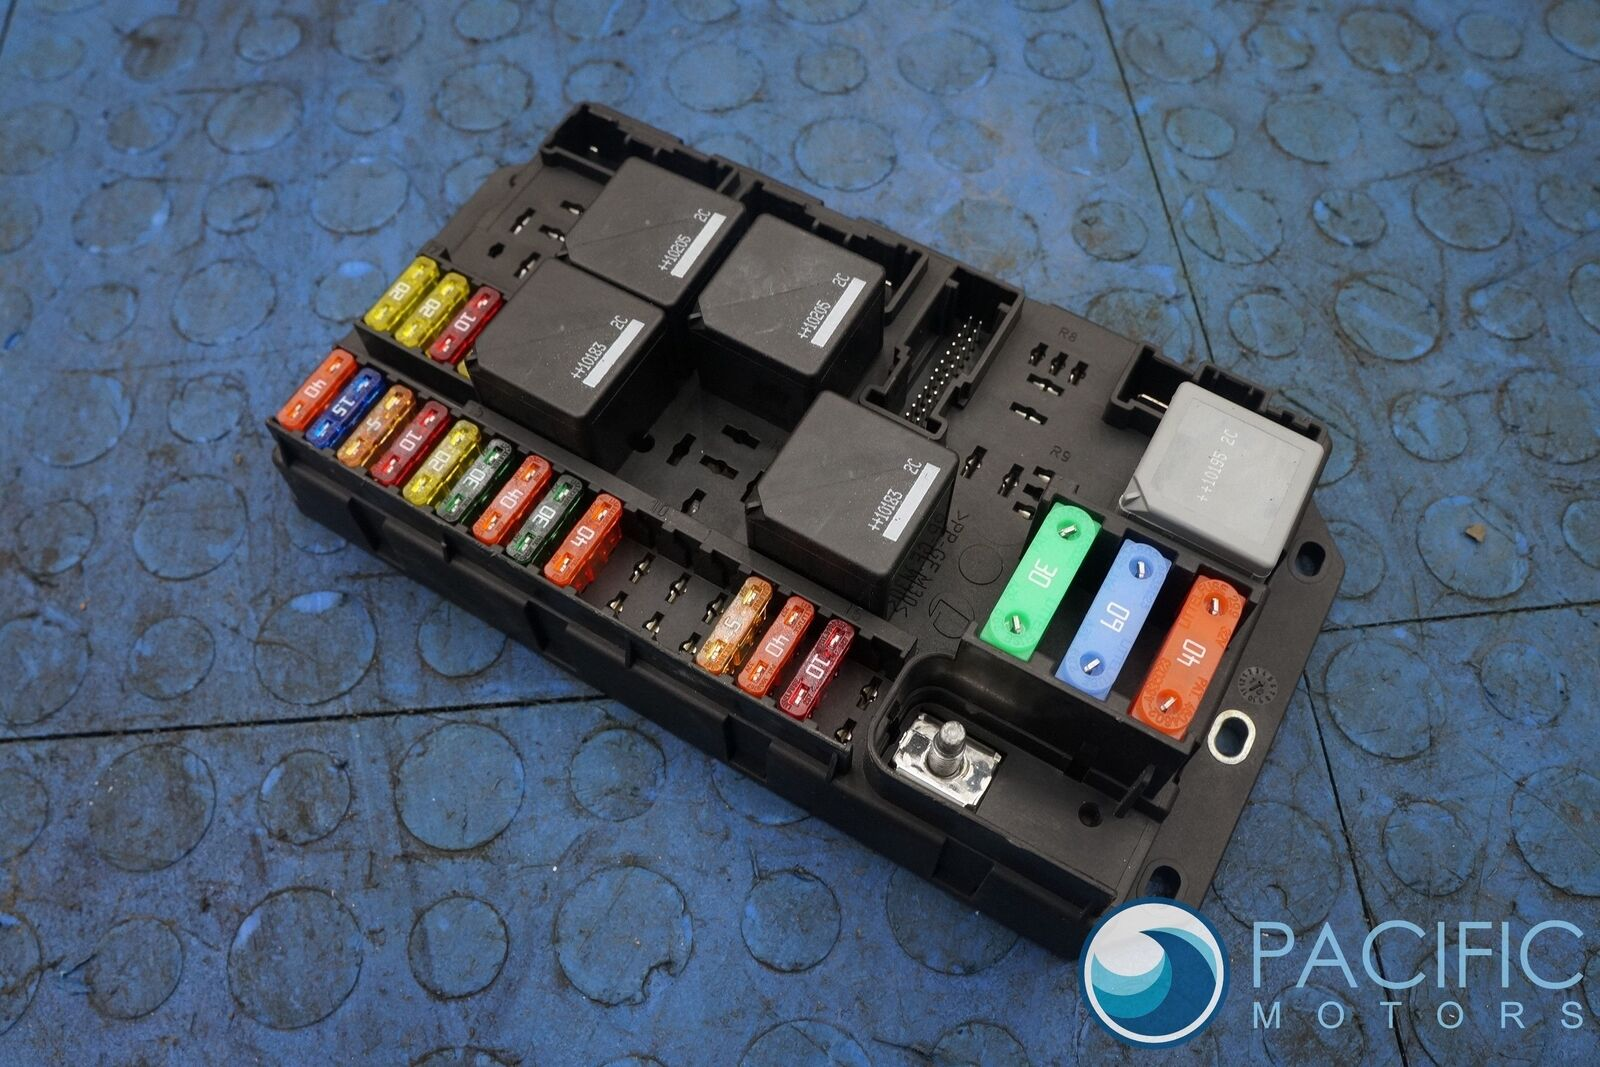 2011 Jaguar Xj Fuse Box Reinvent Your Wiring Diagram 2001 Mustang Cabin Rear Quarter Block Aw9314a073bc Xjl X351 Rh Pacificmotors Com Location 2012